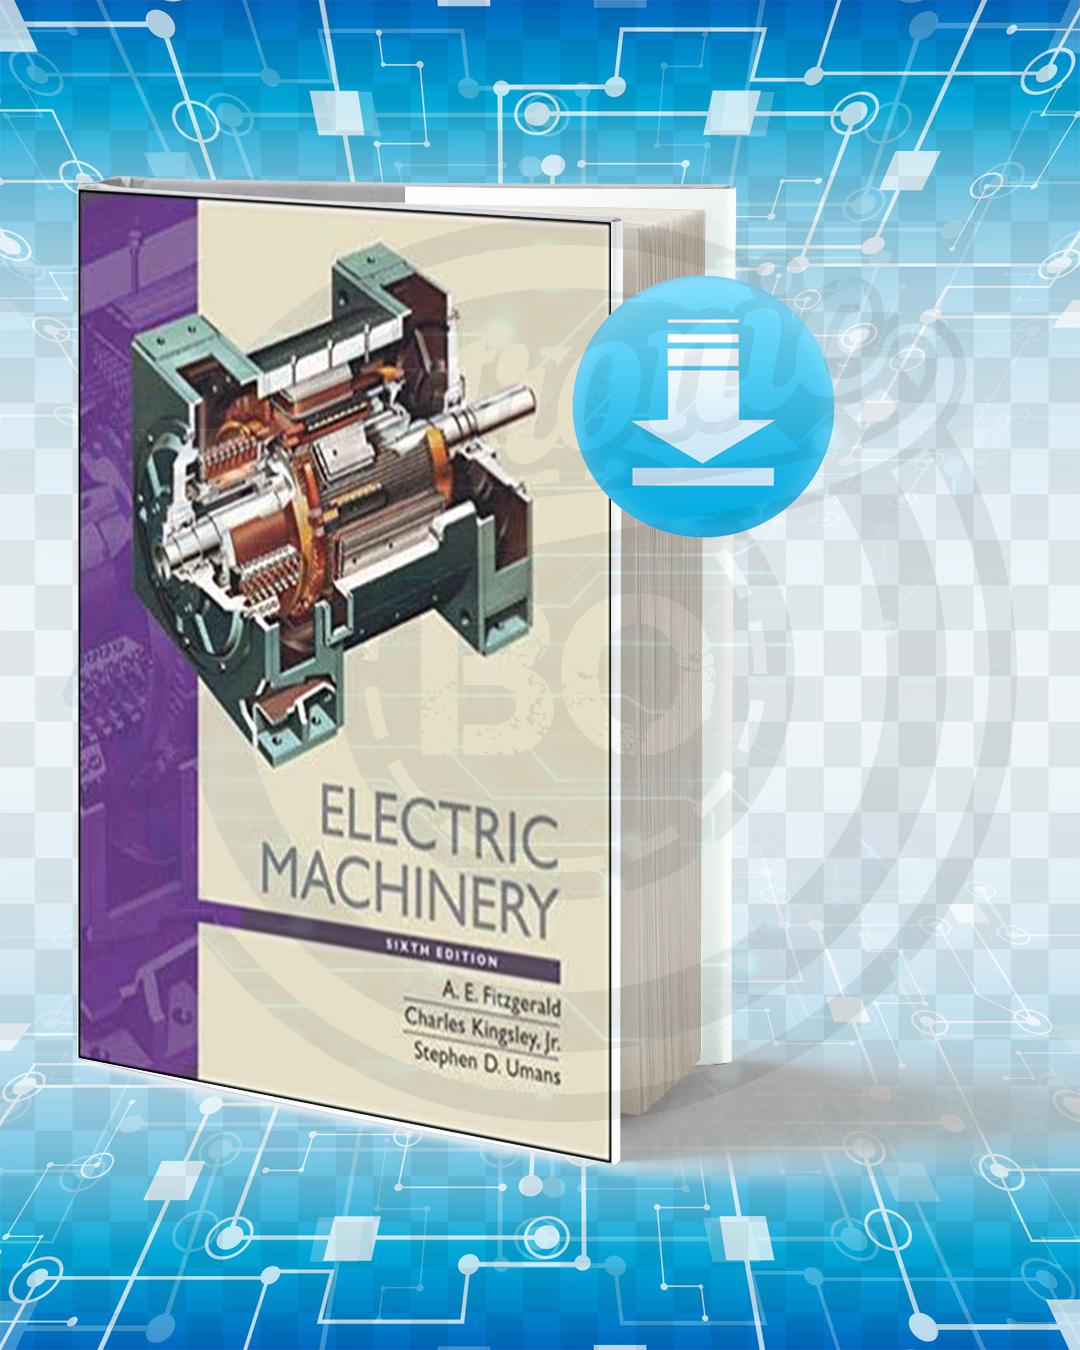 Free Book Electric Machinery pdf.